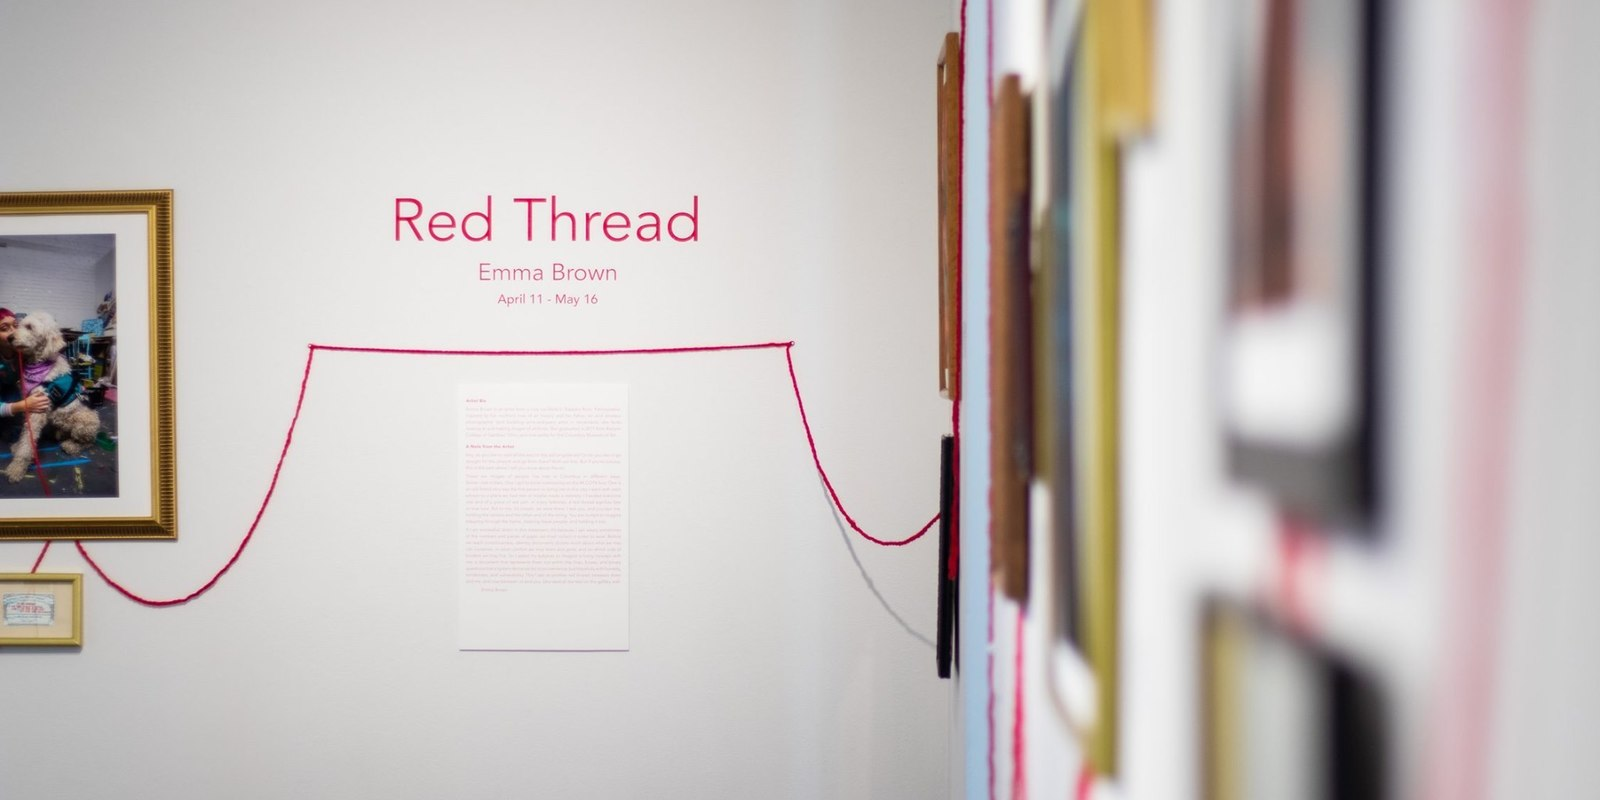 Virtual Opening of Red Thread with Emma Brown